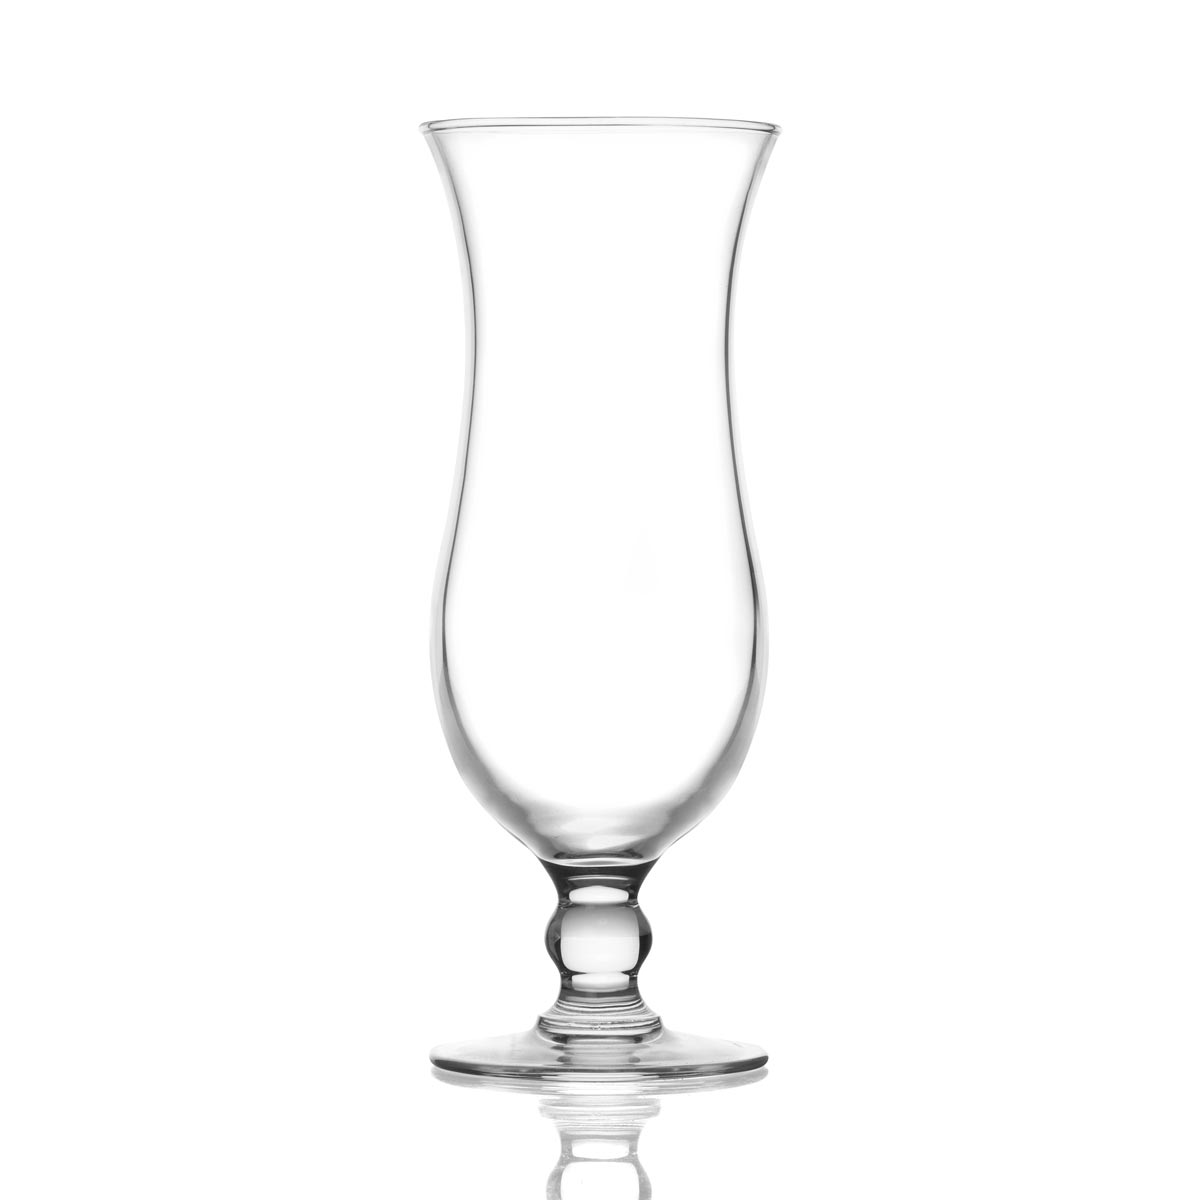 15 Oz. Hurricane Cocktail Glass by